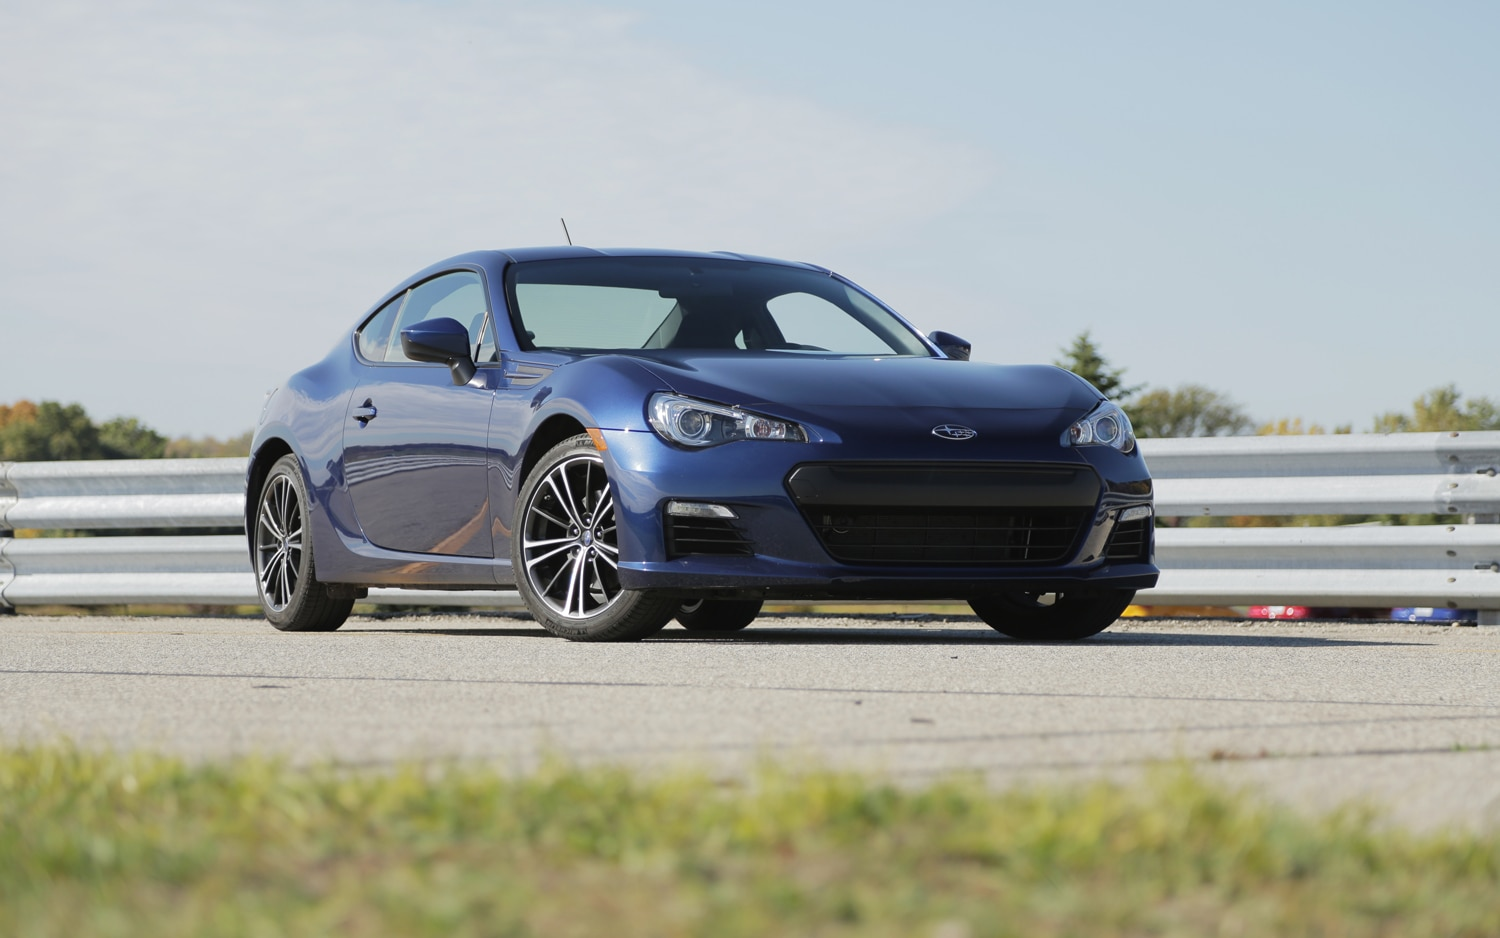 2013 Subaru BRZ Front Right View 21